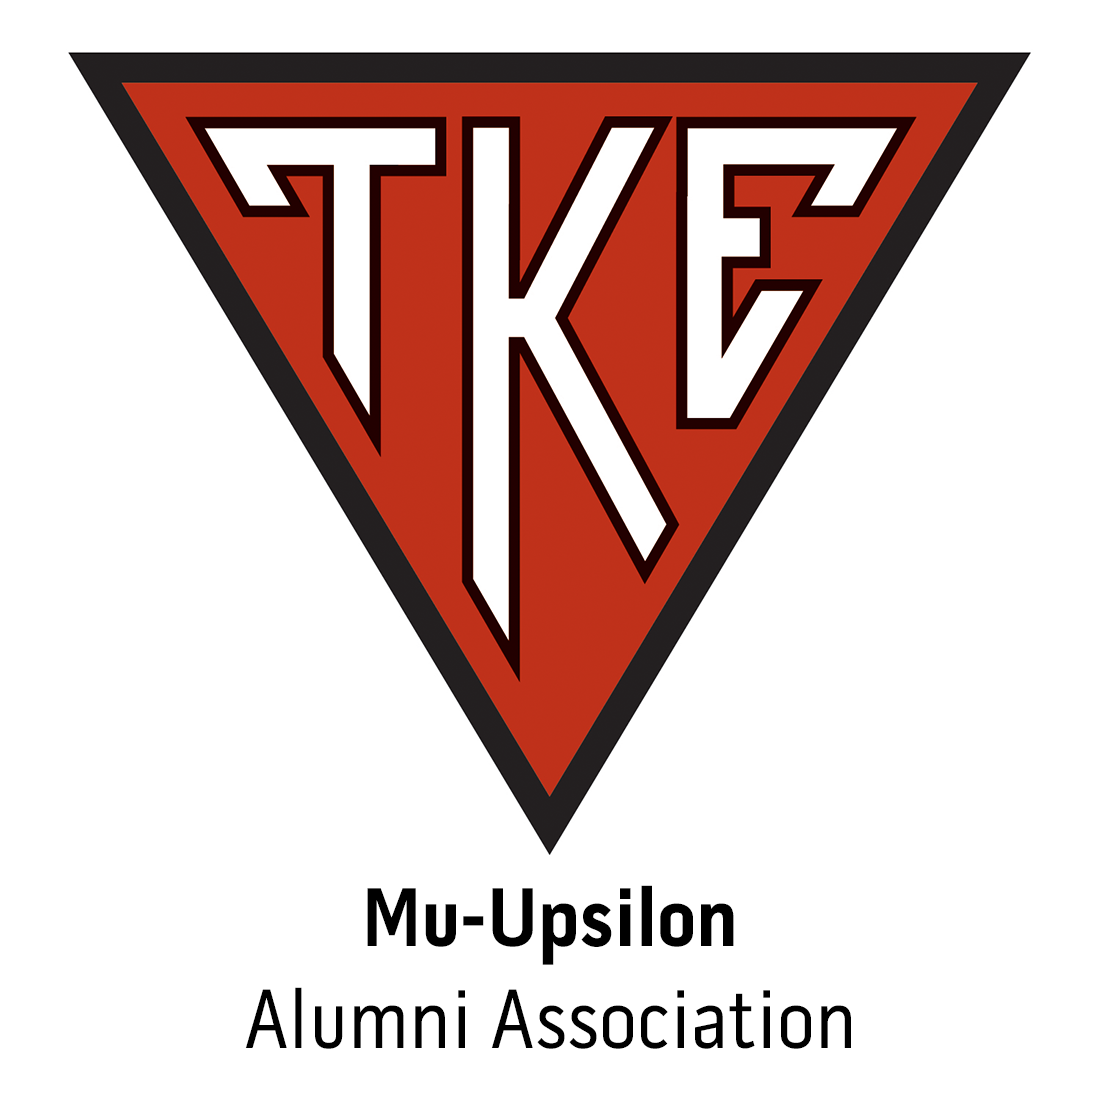 Mu-Upsilon Alumni Association at Illinois State University